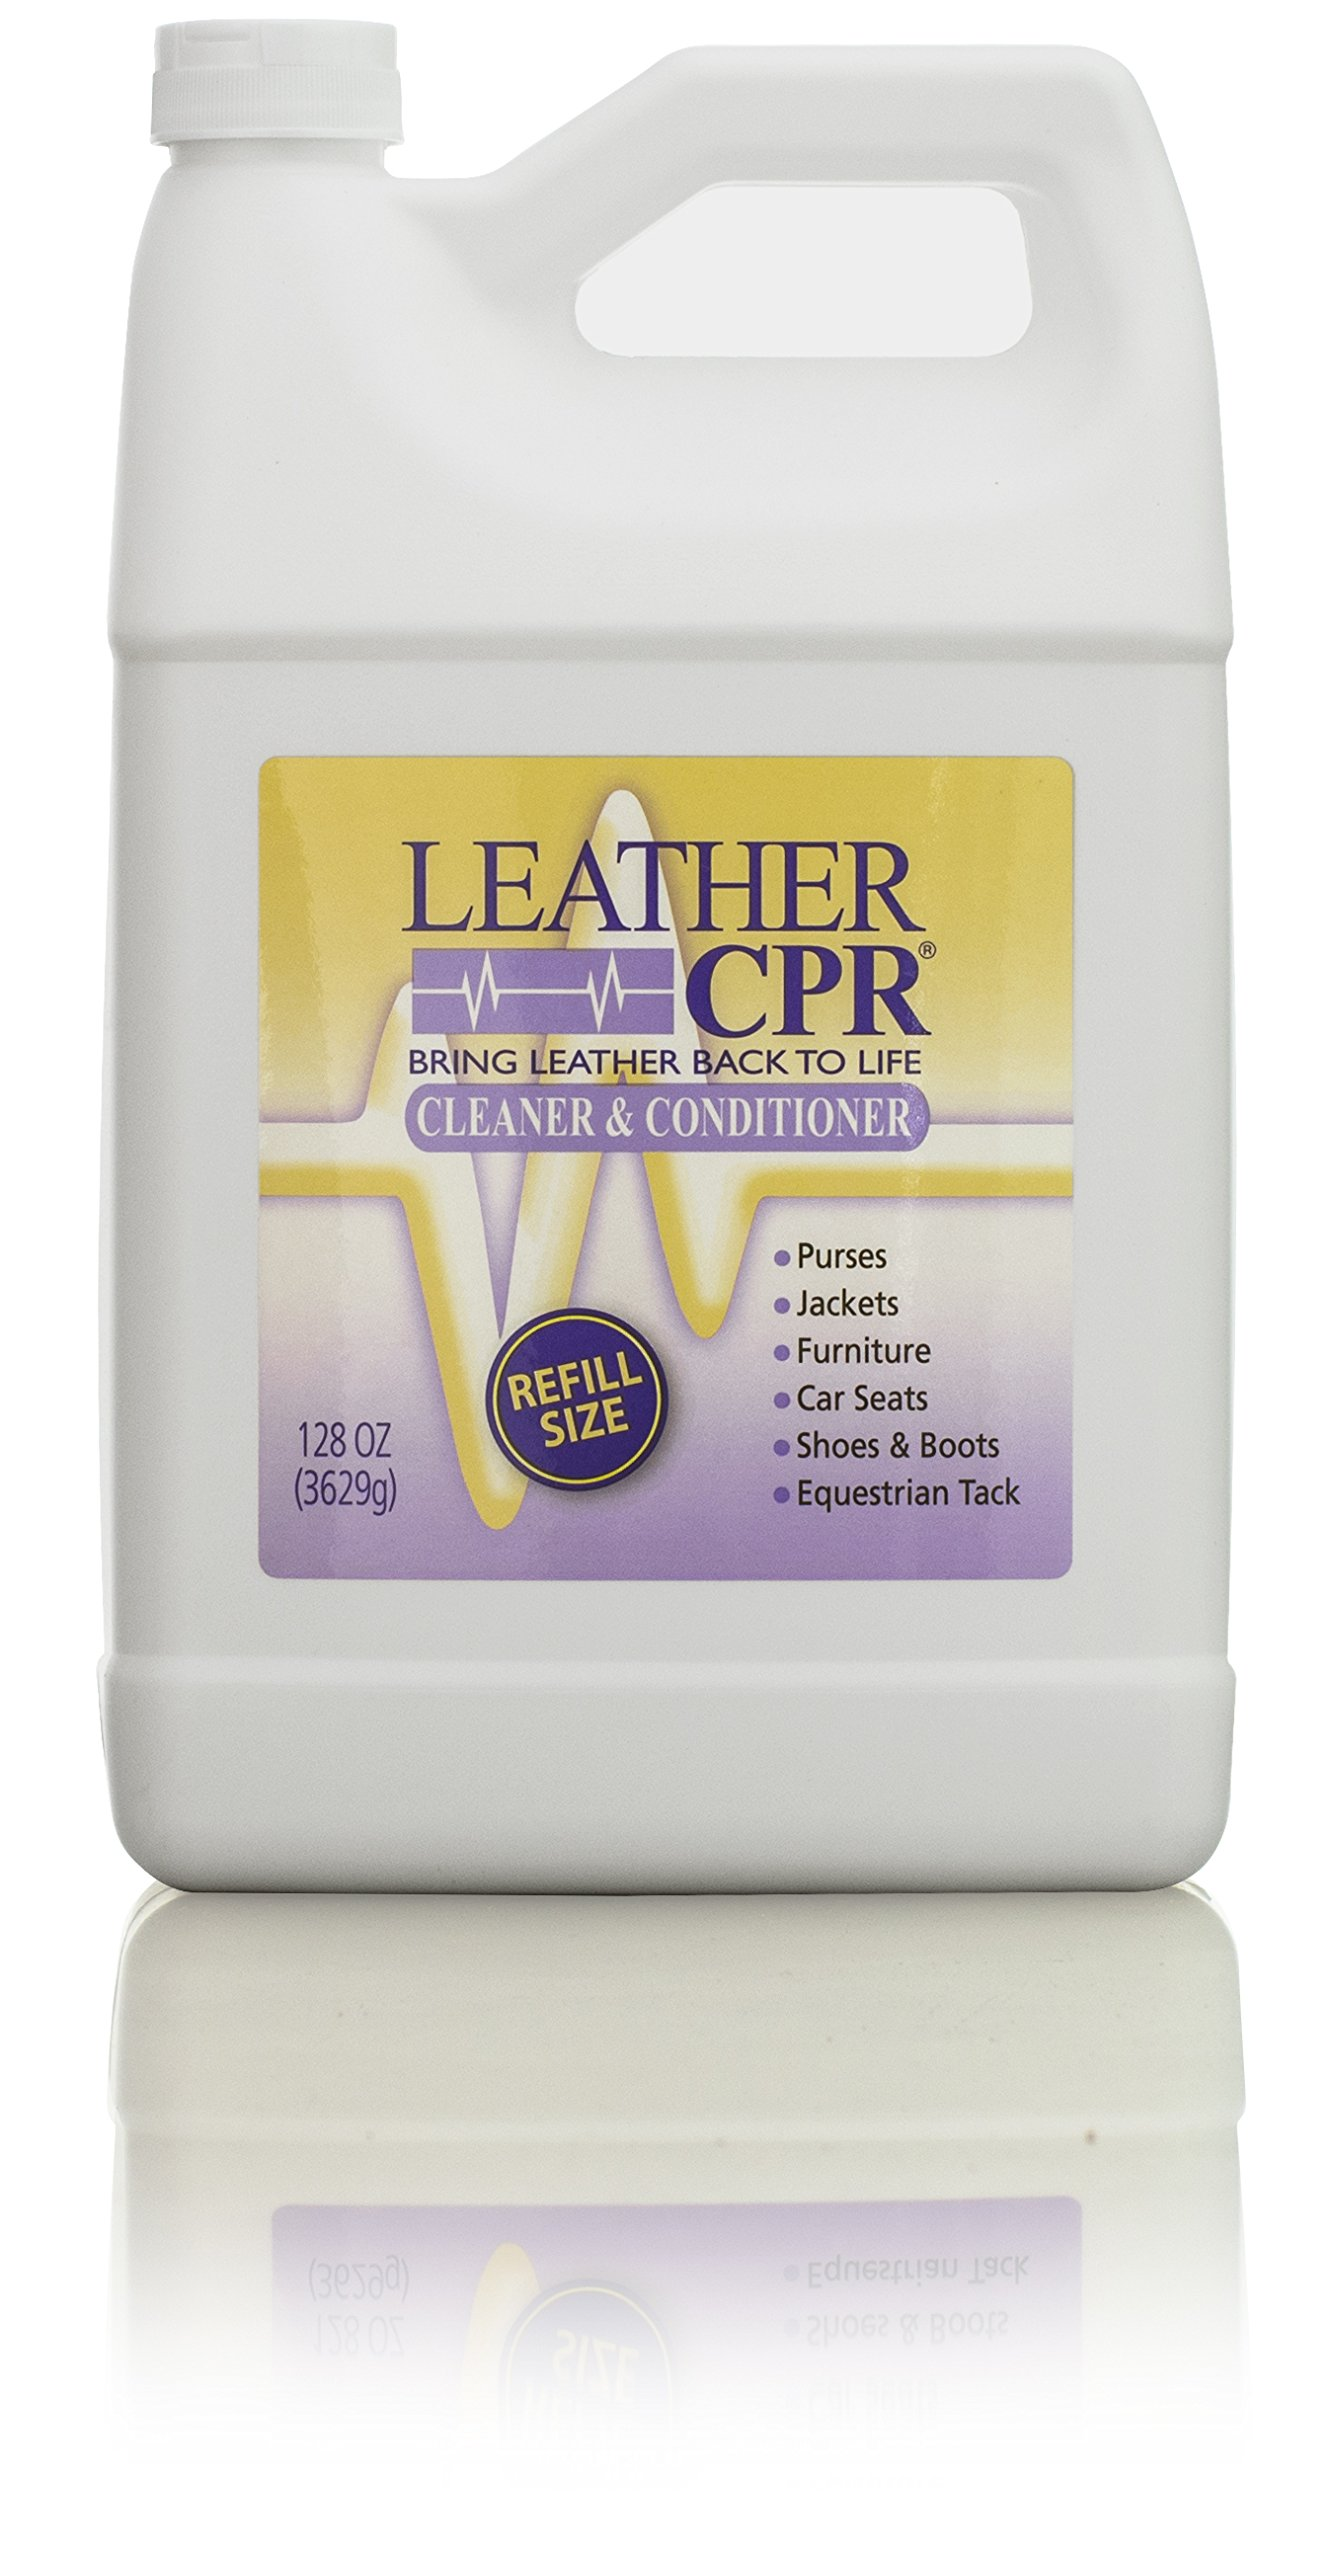 Leather CPR Cleaner & Conditioner, 128 oz, Bring Leather Back to Life! Best Leather Cleaner & Conditioner on the Market. Only Leather Cleaner & Conditioner that is Dermatologist Tested. USA Made by CPR Cleaning Products (Image #1)